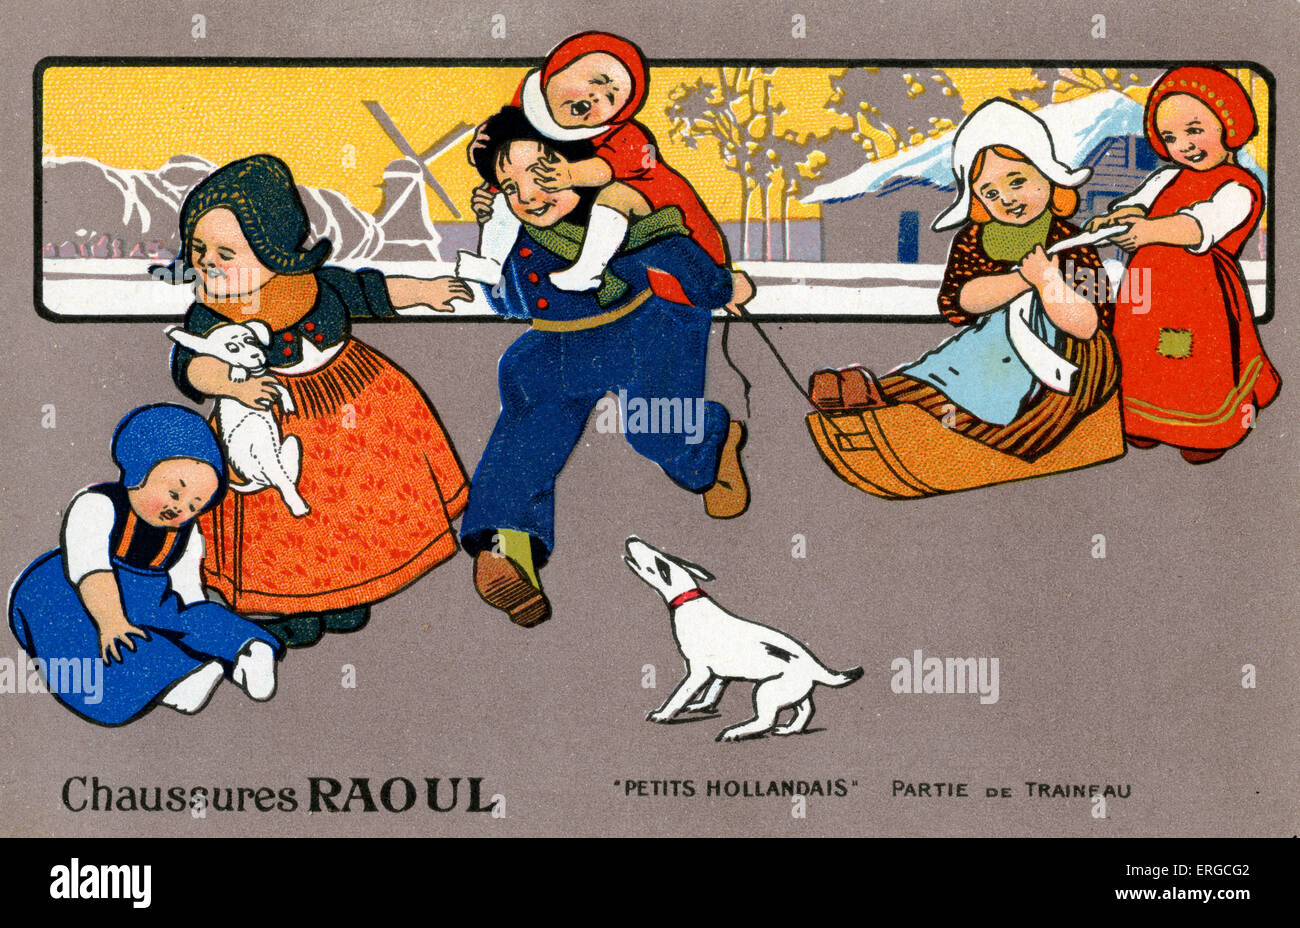 Chaussures Raoul - advert for shoes. Showing Dutch children in traditional dress. - Stock Image